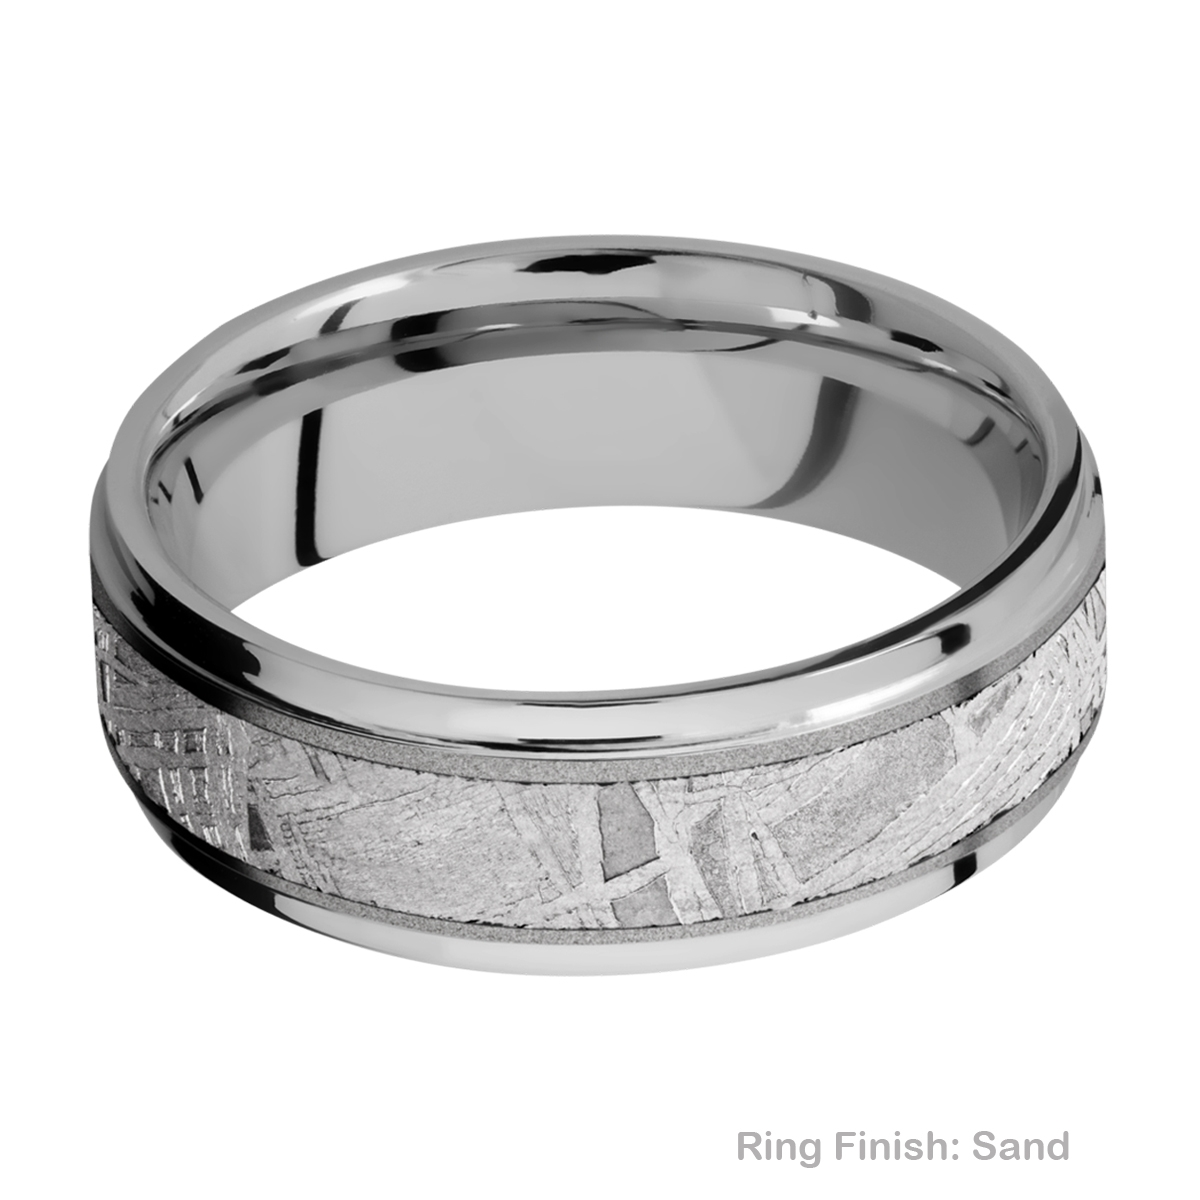 Lashbrook 7FGE14/METEORITE Titanium Wedding Ring or Band Alternative View 4